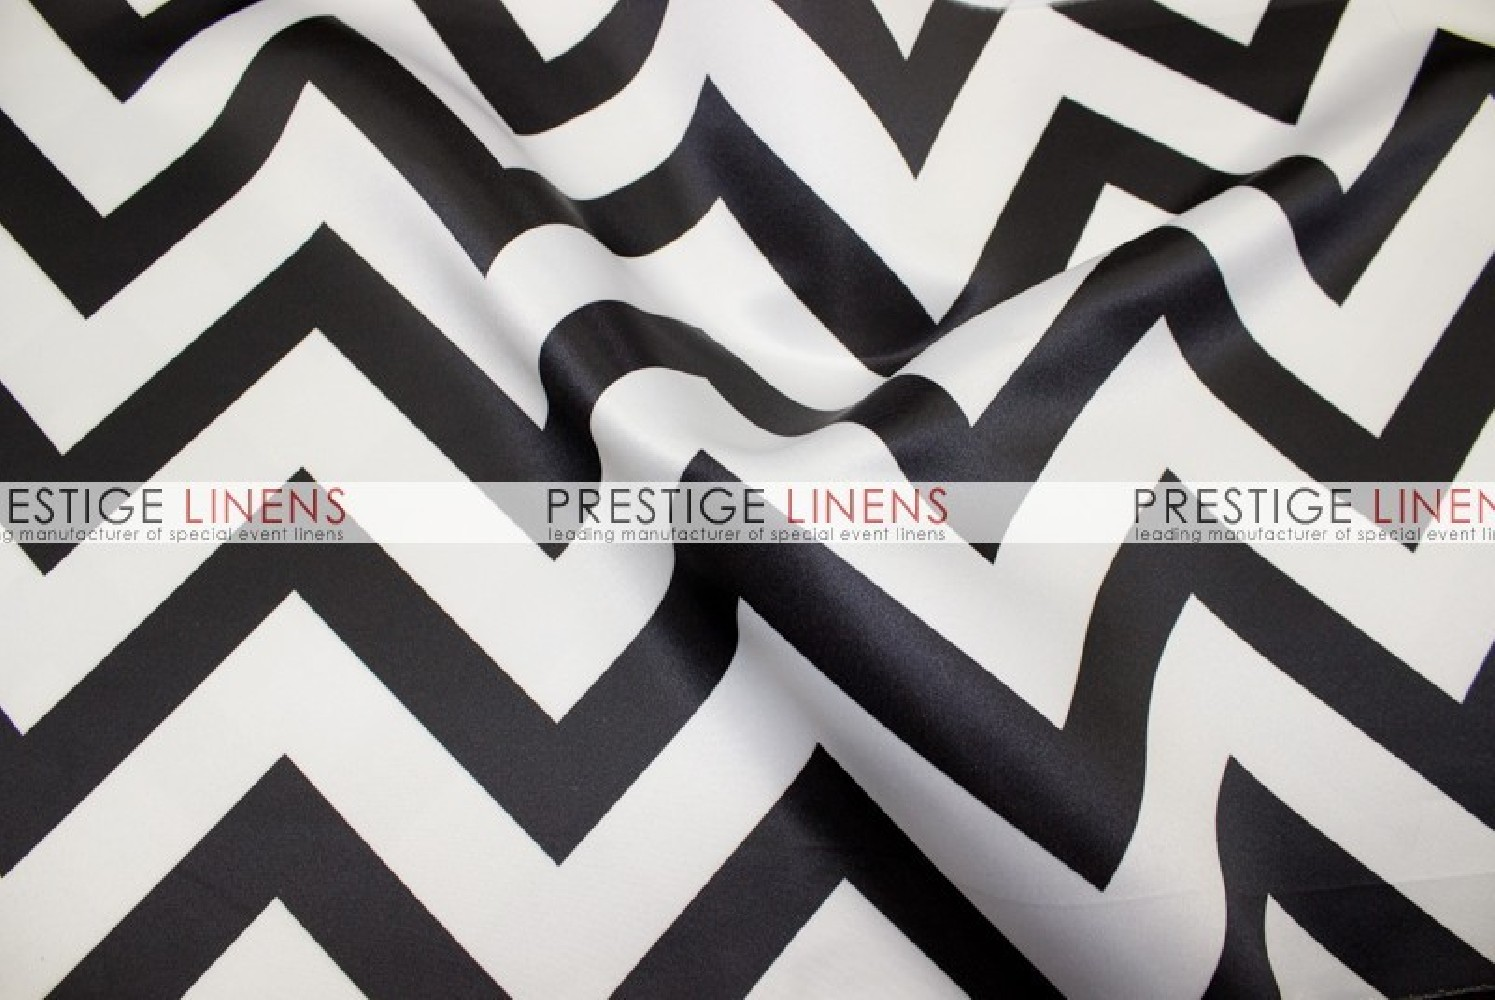 scuba chair covers wholesale small accent chairs with wood arms chevron print lamour pad cover-black - prestige linens